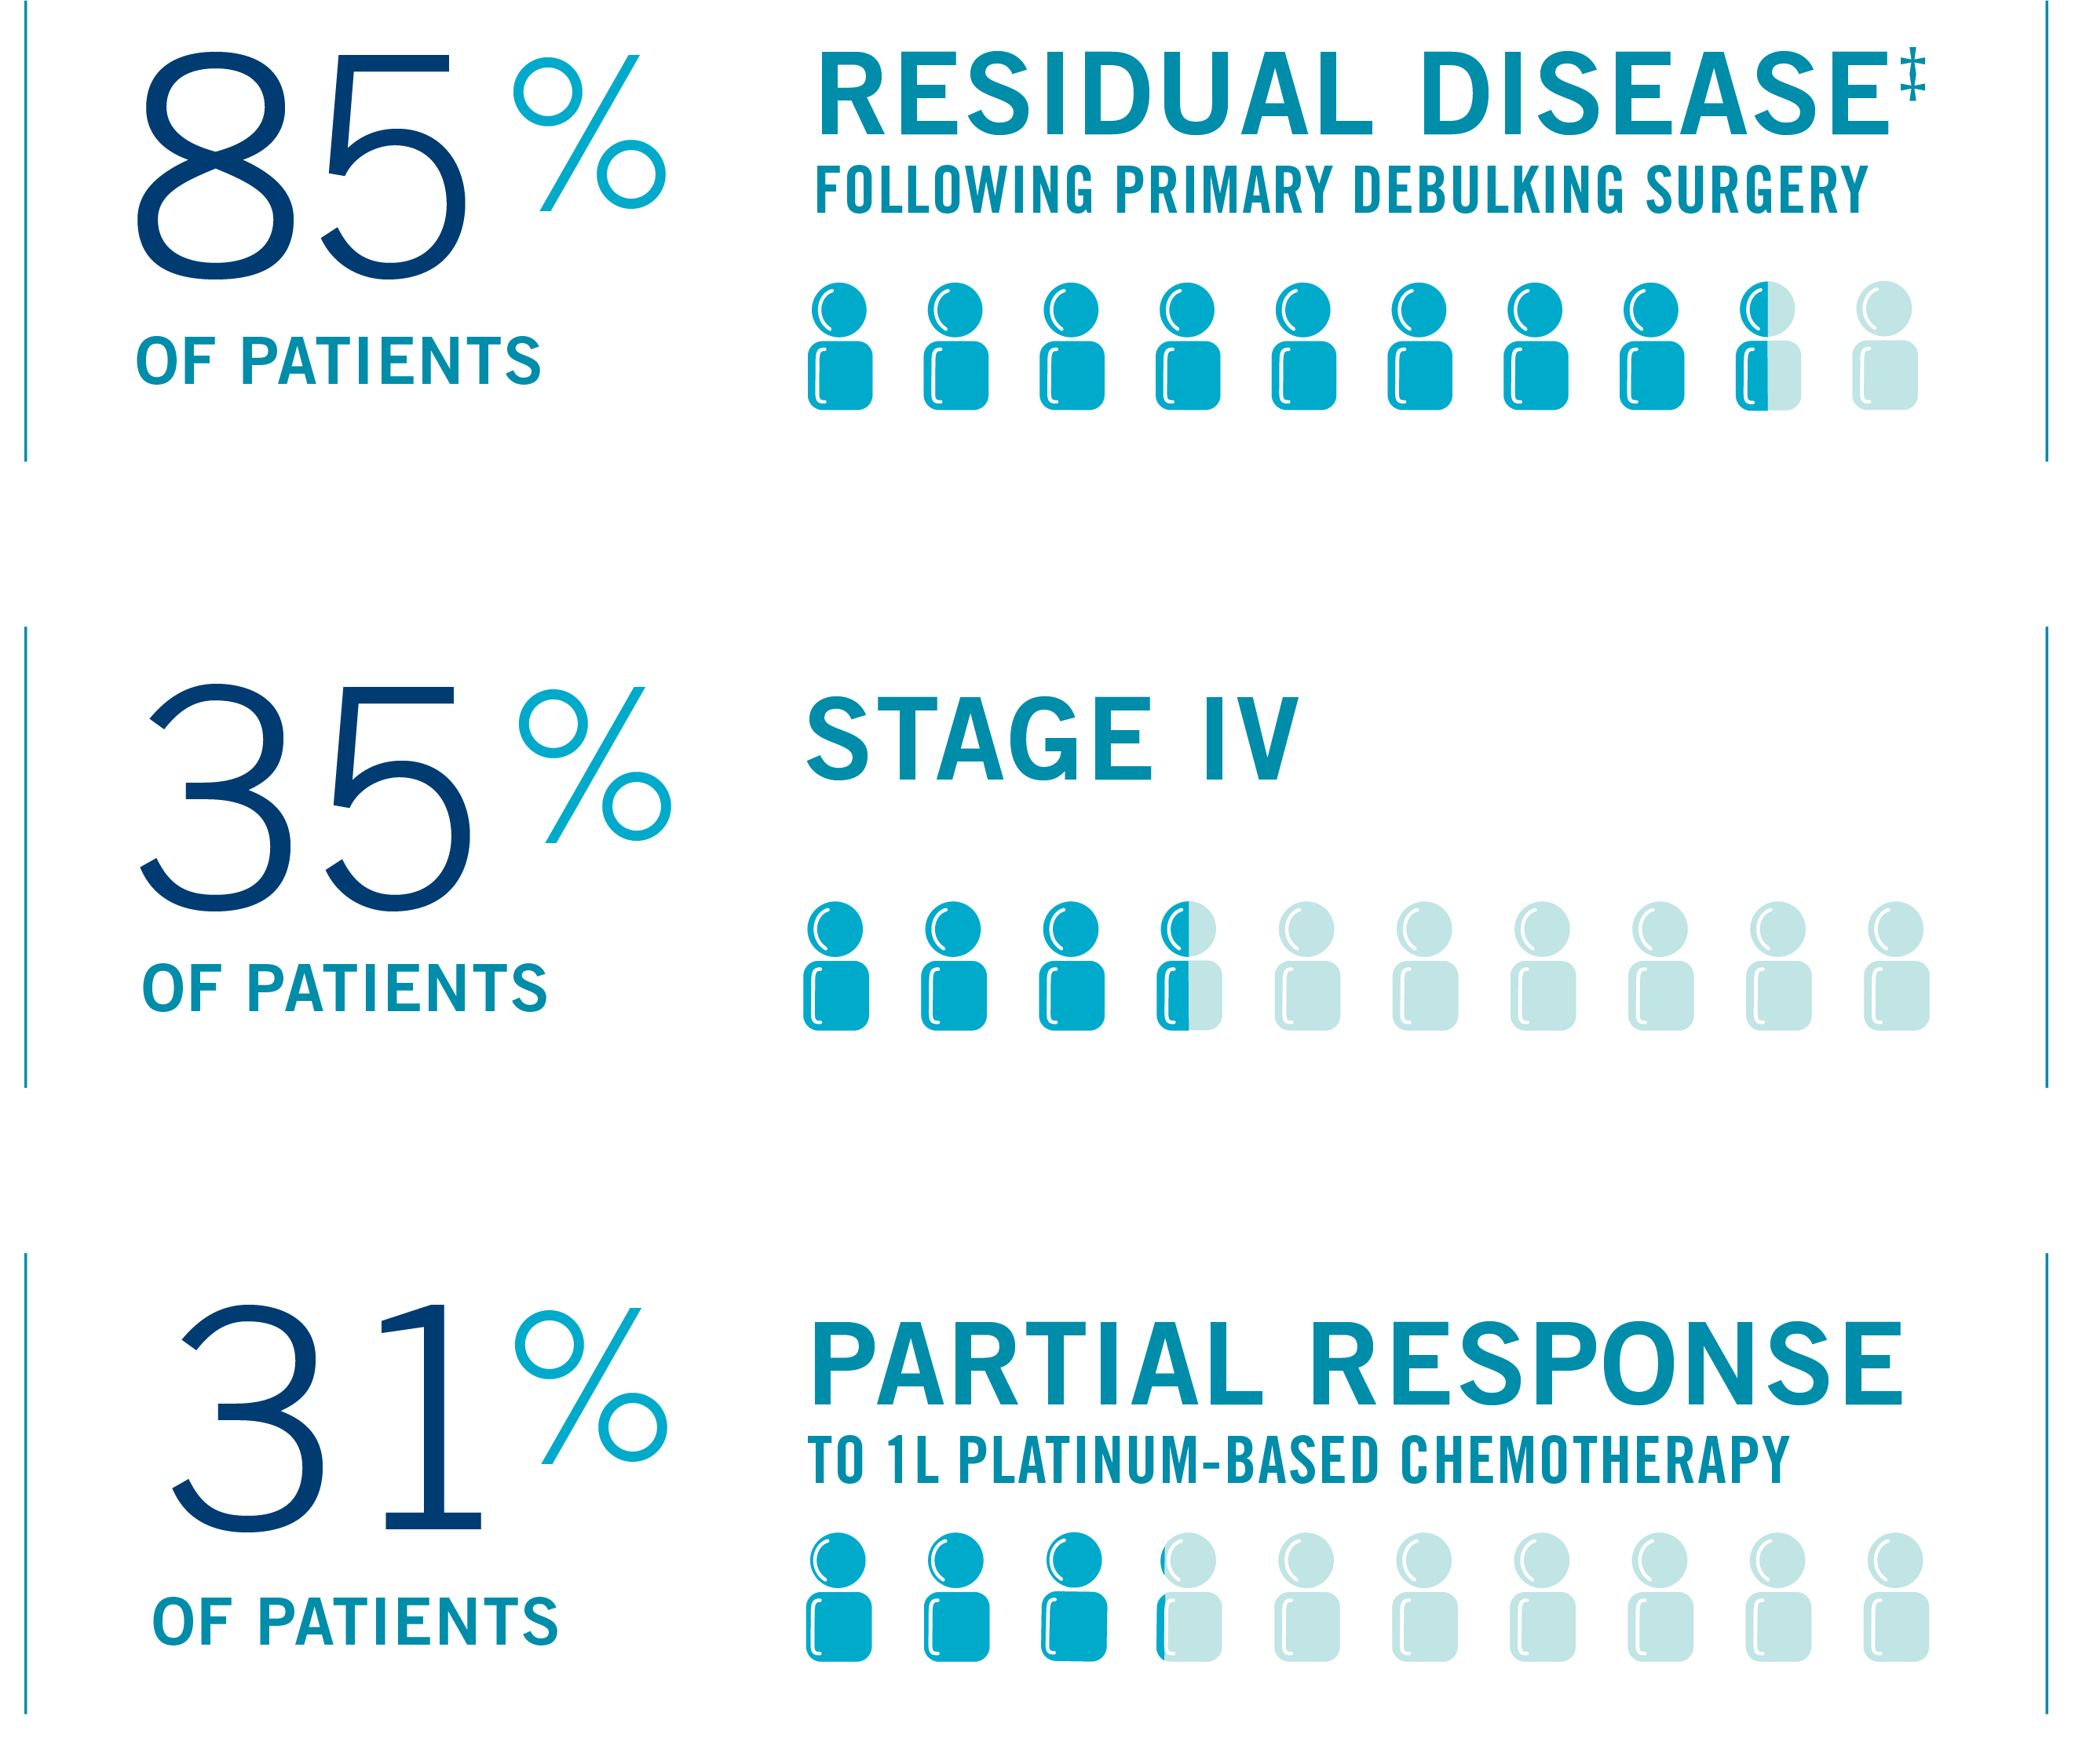 Visual showing 85% residual disease following primary debulking surgery, 35% of patients stage IV, 31% partial response to 1L platinum-based chemotherapy.